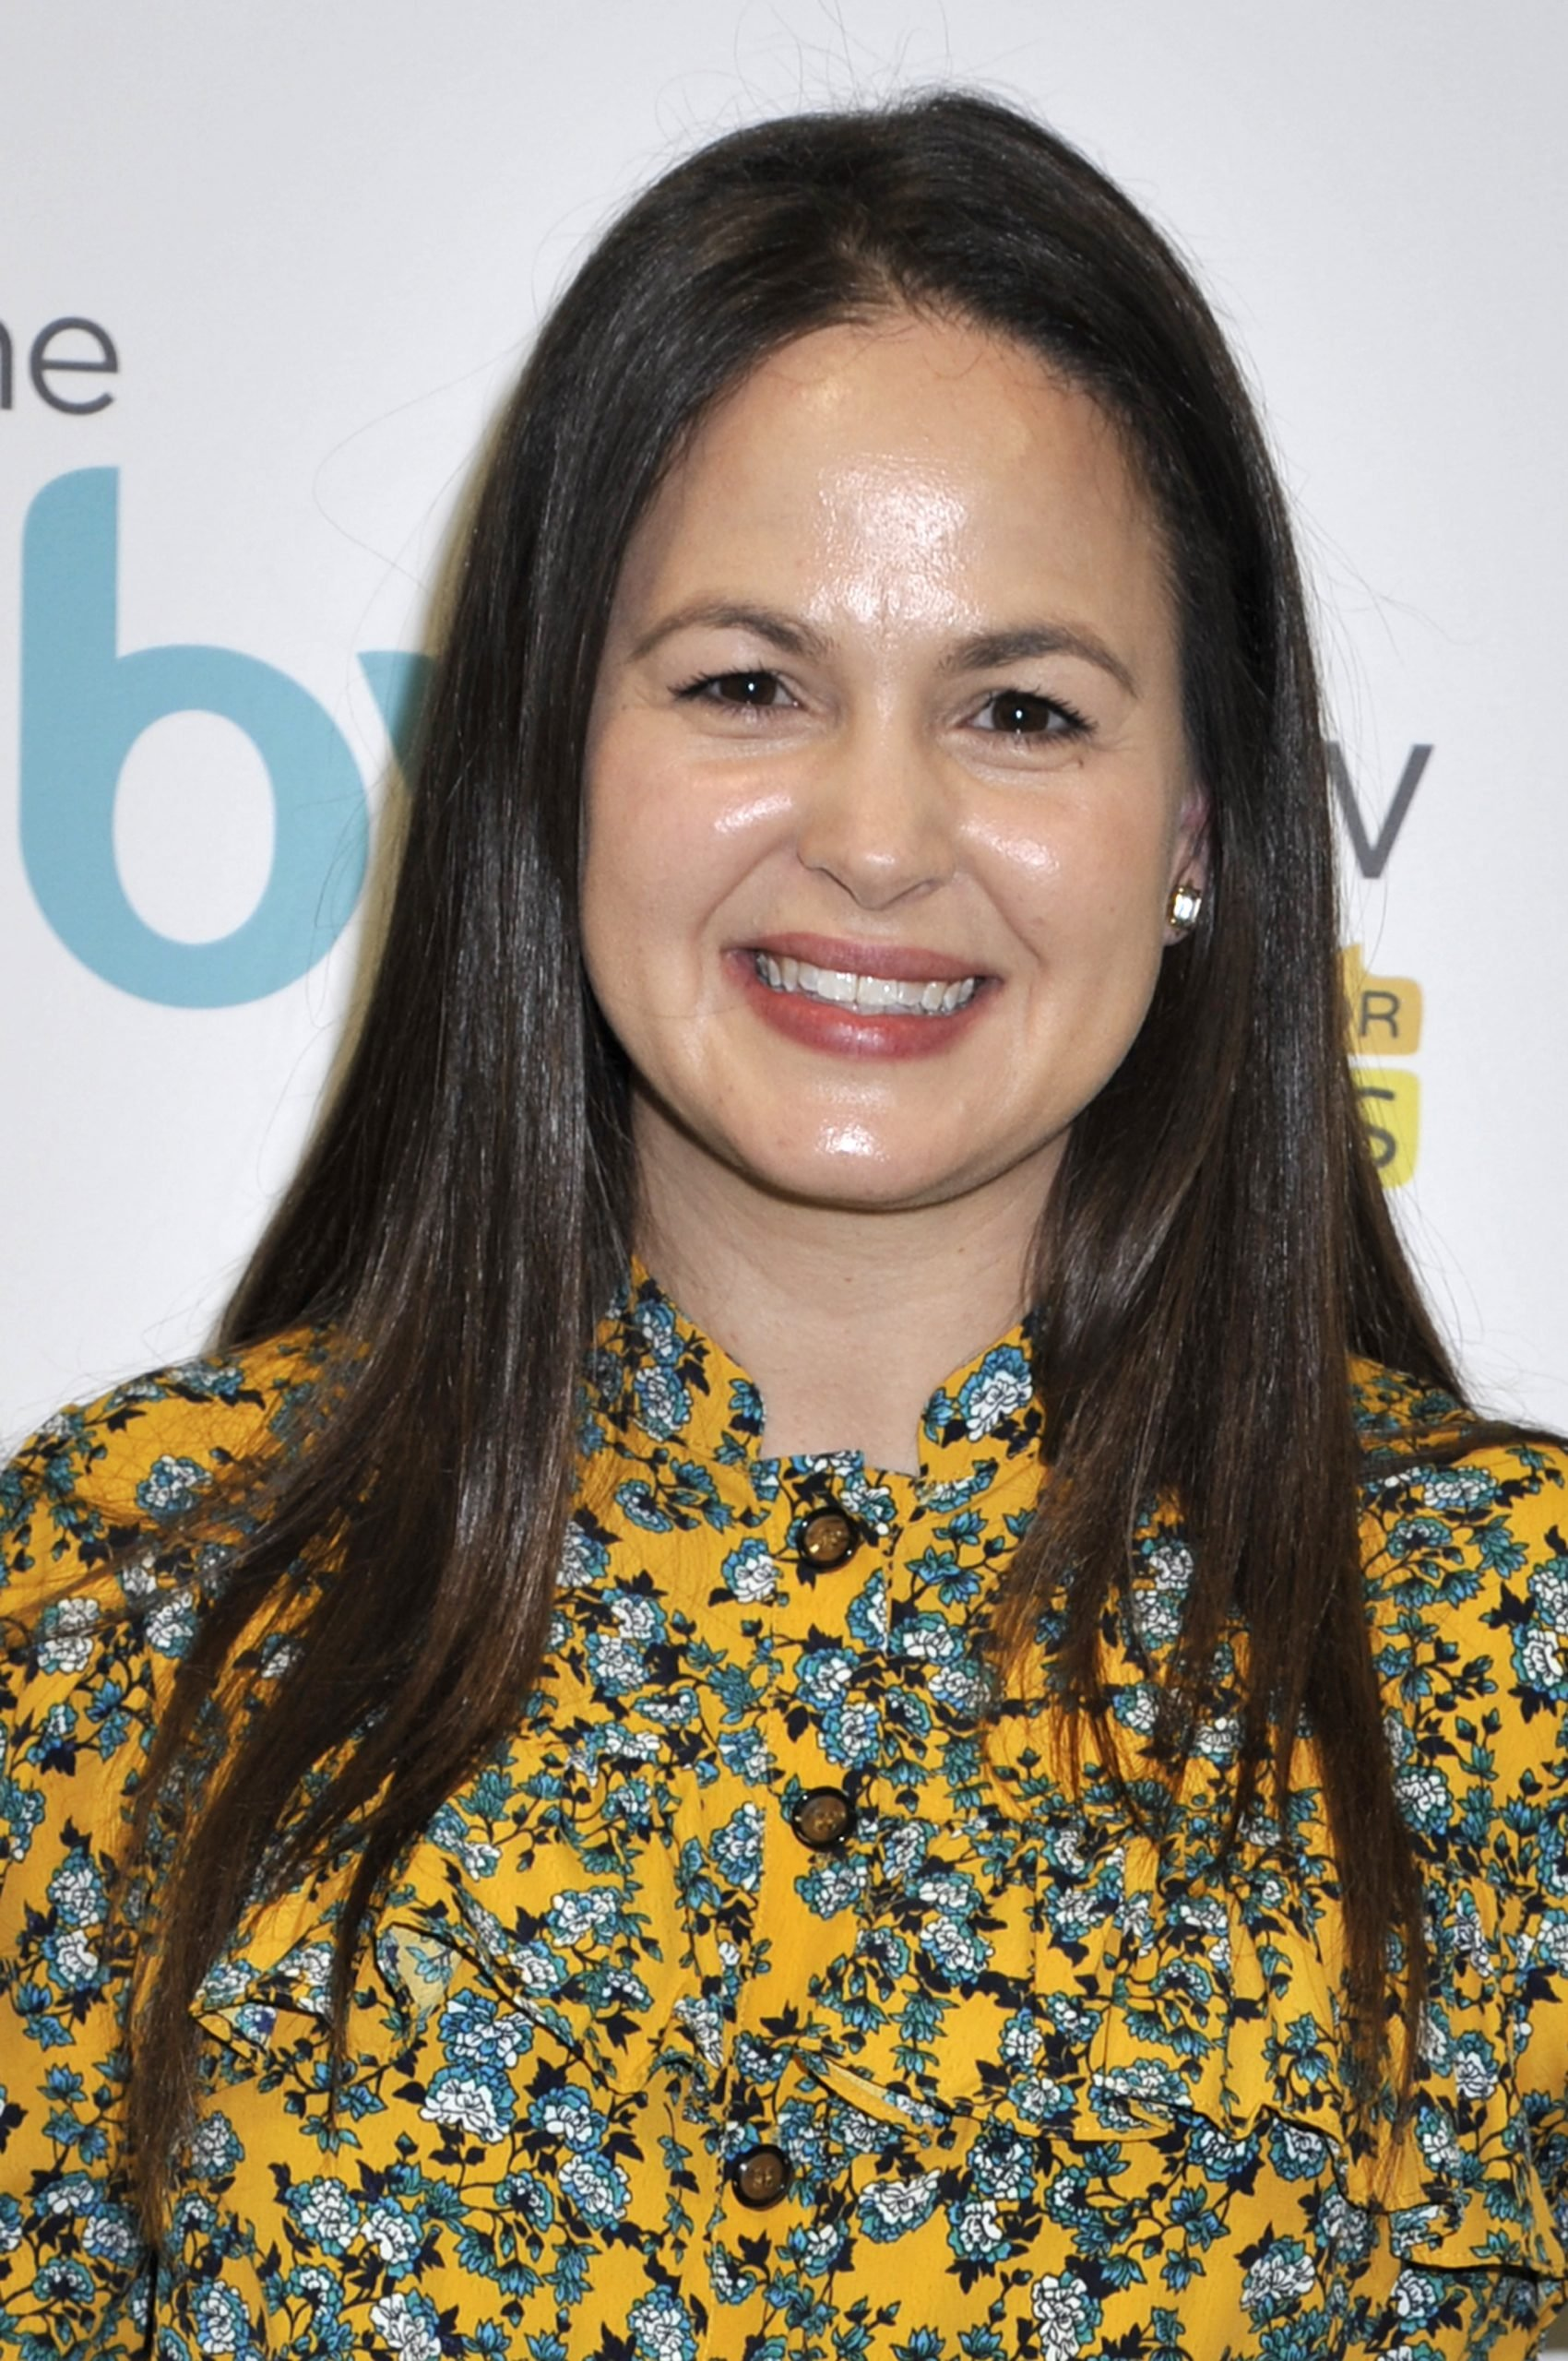 Stars attend The Baby Show, Olympia, Hammersmith Road, Hammersmith, London W14 8UX on Saturday 19 October 2019. Pictured: Giovanna Fletcher Ref: SPL5123317 191019 NON-EXCLUSIVE Picture by: Sue Andrews / SplashNews.com Splash News and Pictures Los Angeles: 310-821-2666 New York: 212-619-2666 London: +44 (0)20 7644 7656 Berlin: +49 175 3764 166 photodesk@splashnews.com World Rights